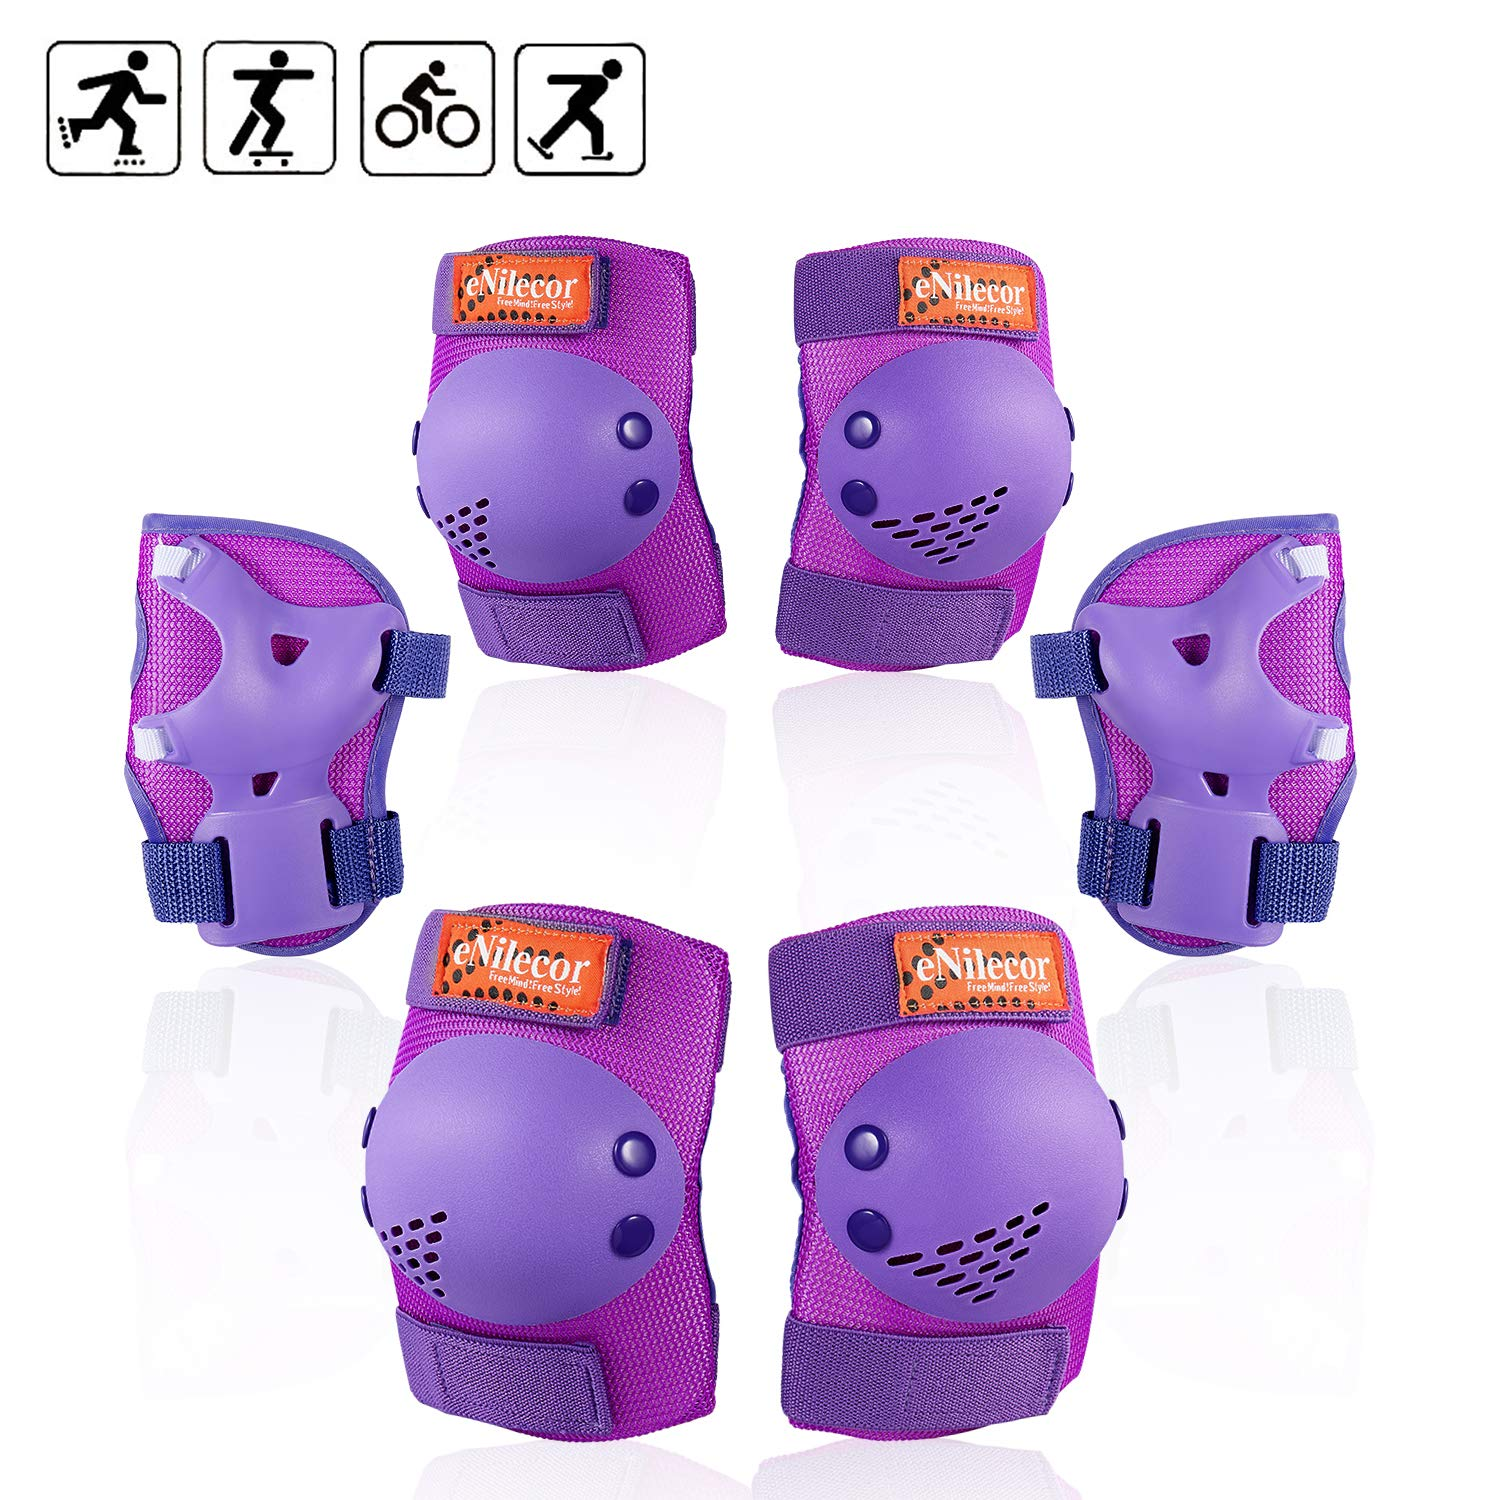 eNilecor Knee Pads for Kids Youth Rollerblade Roller Skates Cycling Elbow Pads Wrist Guards Protective Gear Set for BMX Bike Skateboard Inline Skatings Scooter Riding Sports